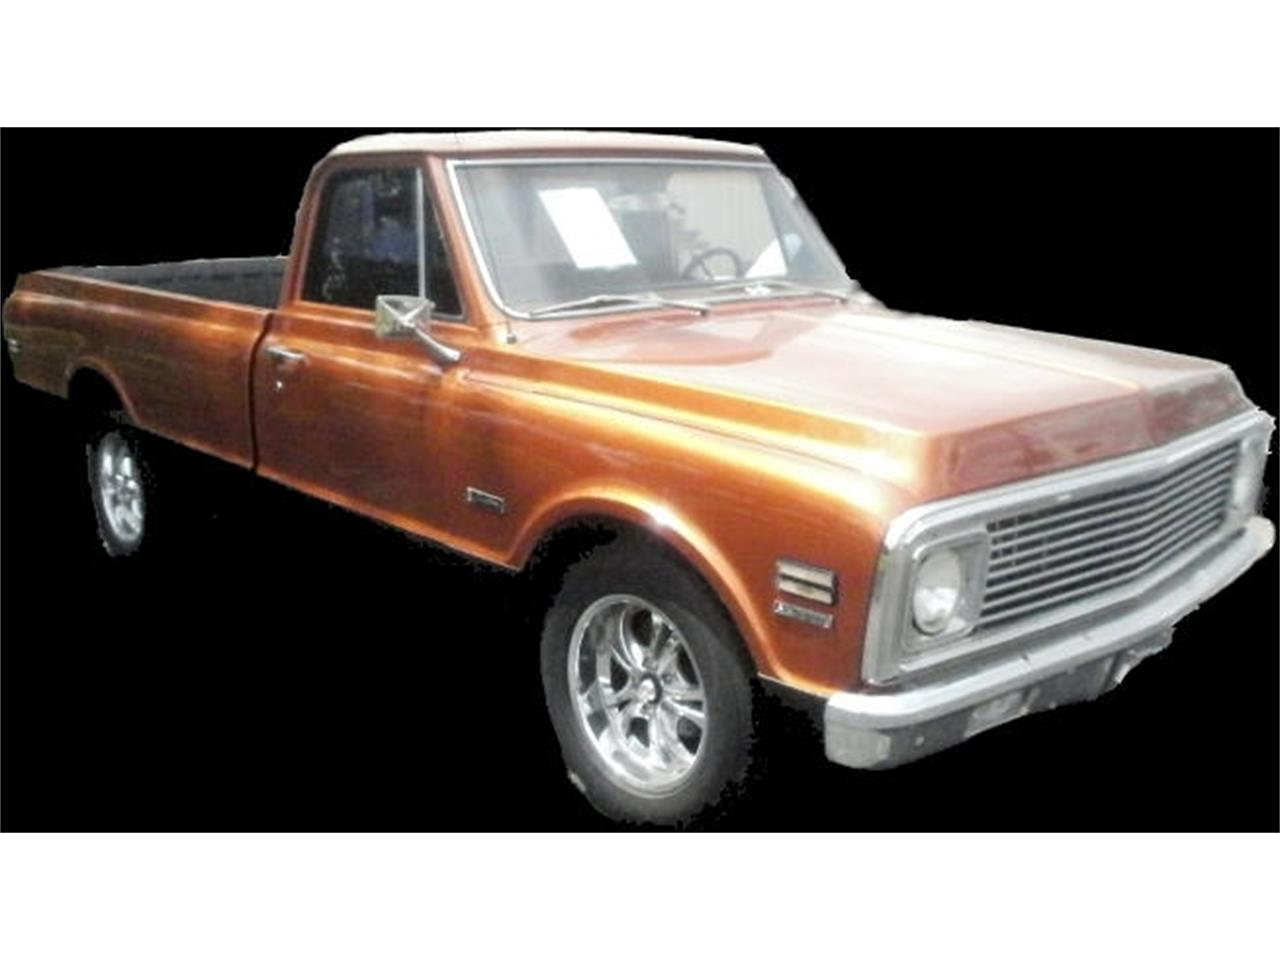 1971 Chevrolet Cheyenne for sale in Cleburne, TX